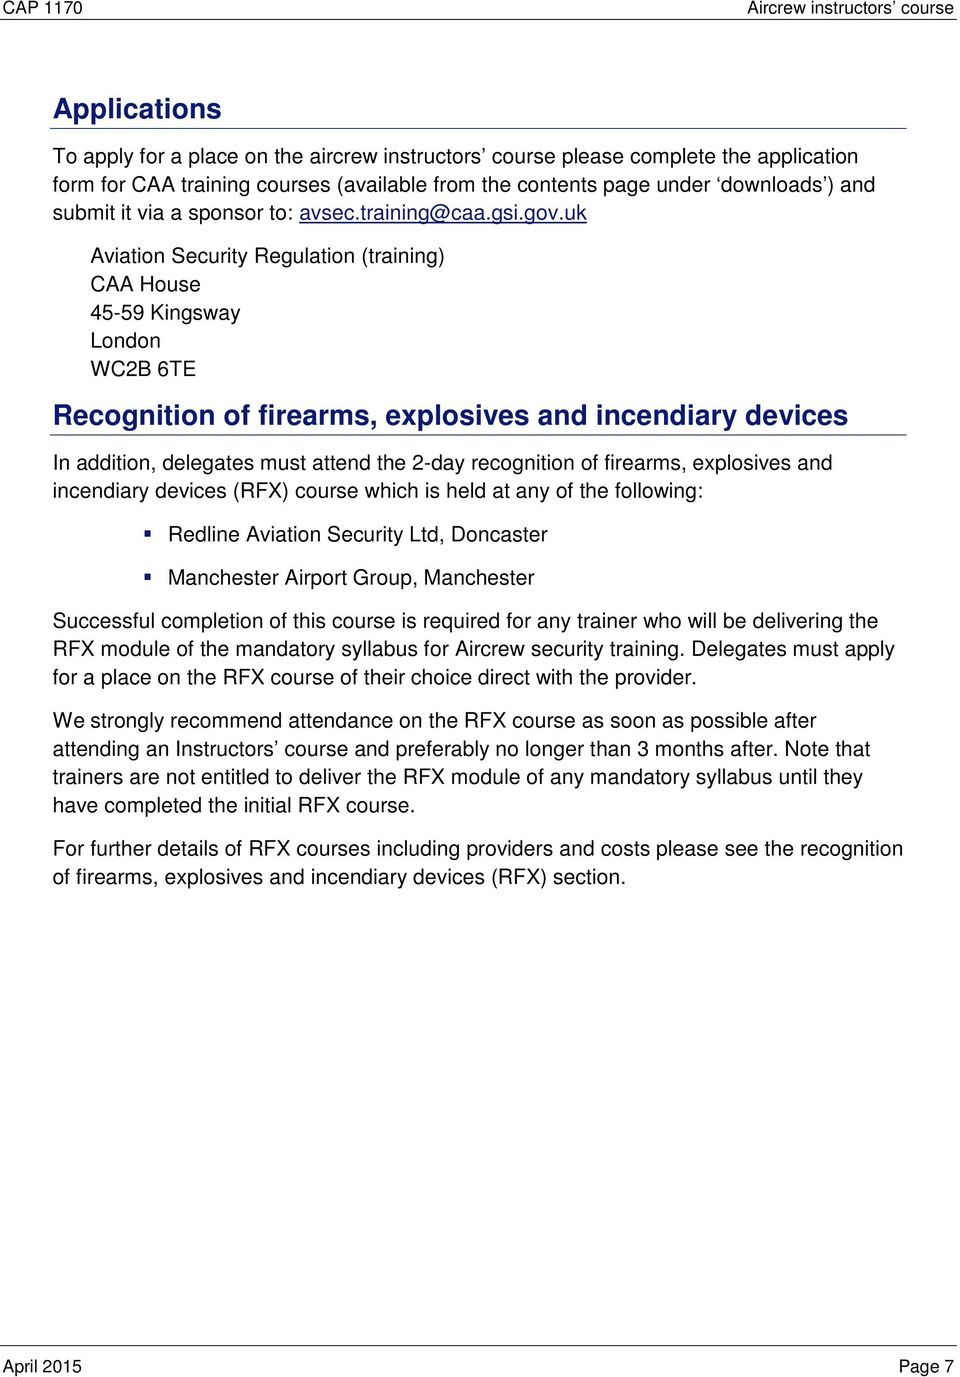 uk Aviation Security Regulation (training) CAA House 45-59 Kingsway London WC2B 6TE Recognition of firearms, explosives and incendiary devices In addition, delegates must attend the 2-day recognition